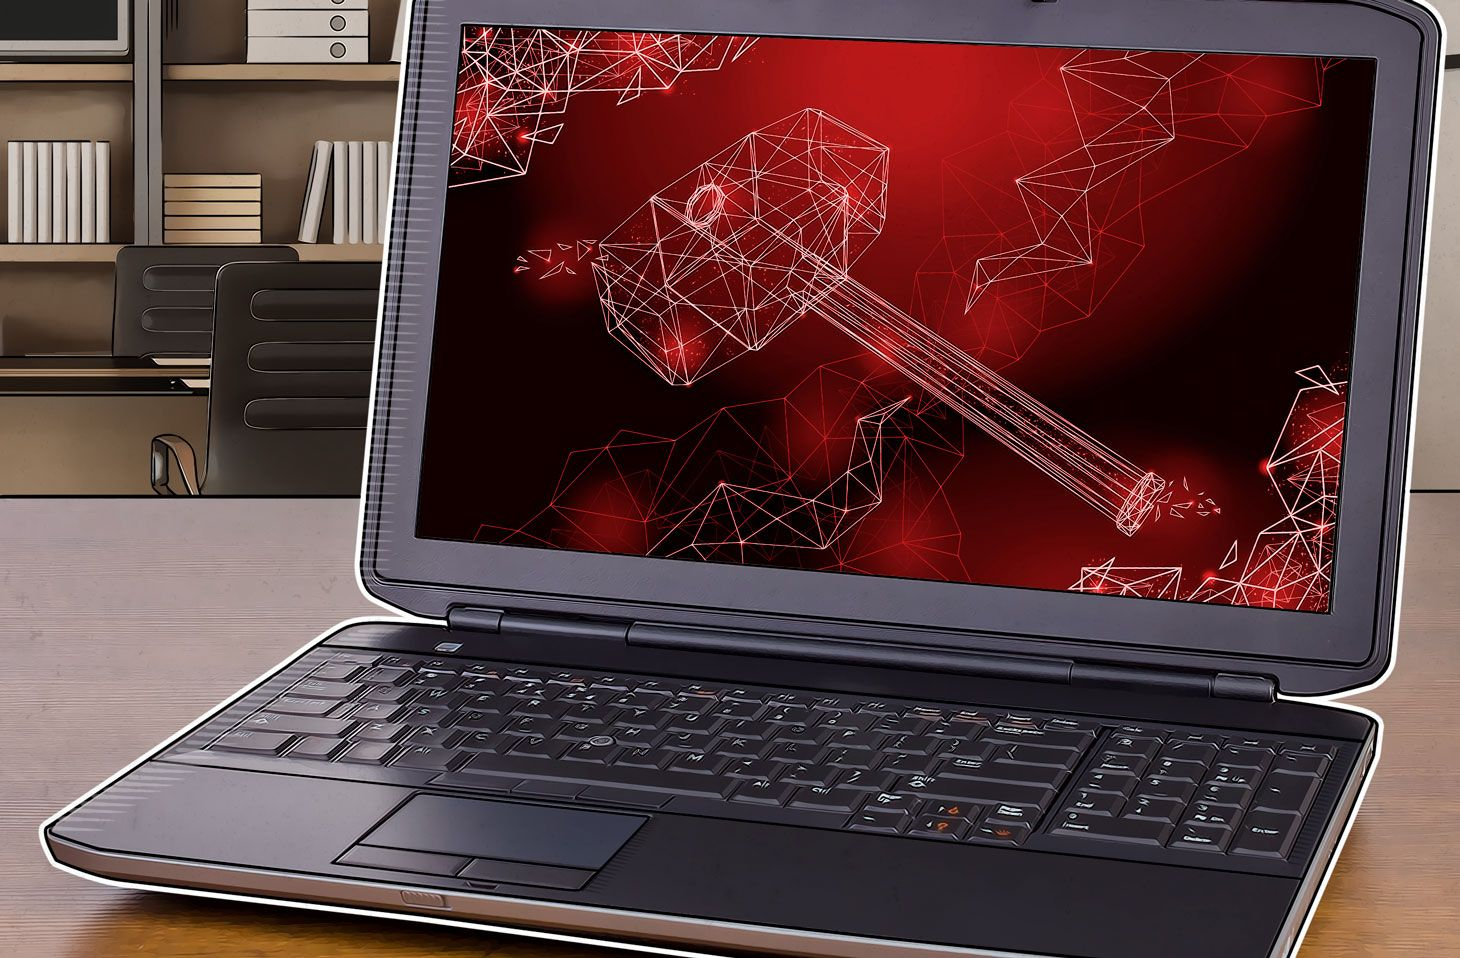 Malicious updates for ASUS laptops | Kaspersky official blog